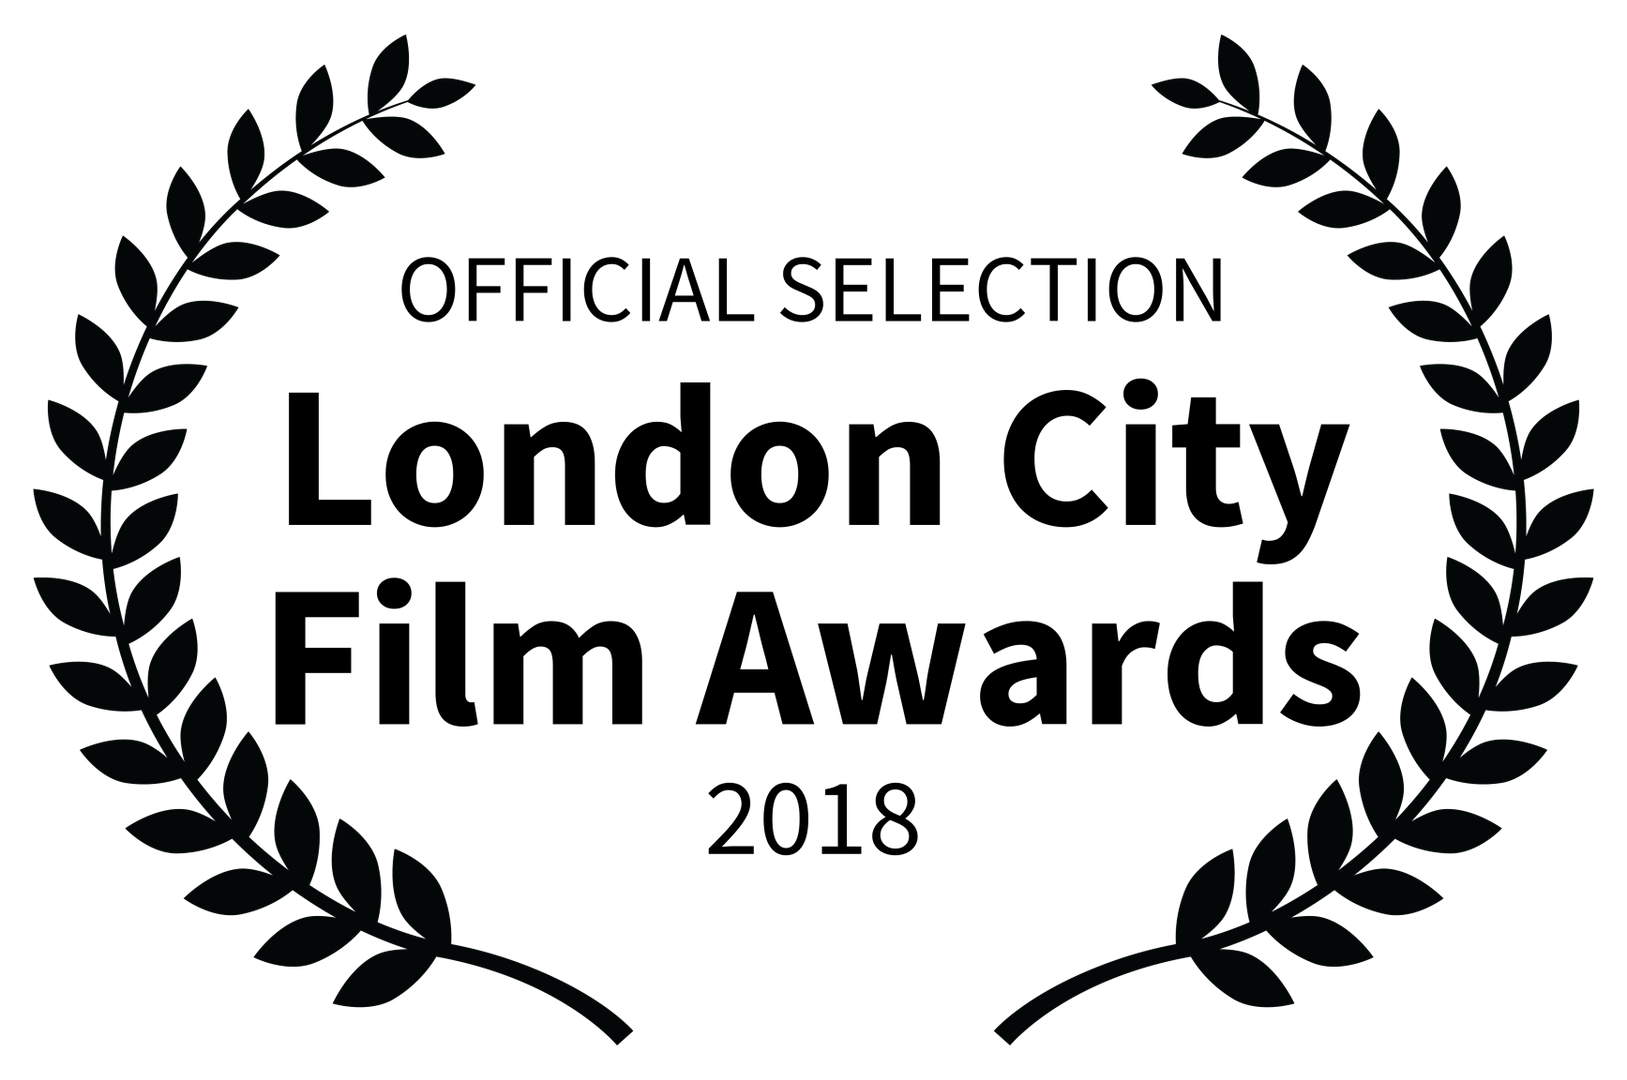 OFFICIAL SELECTION - London City Film Aw